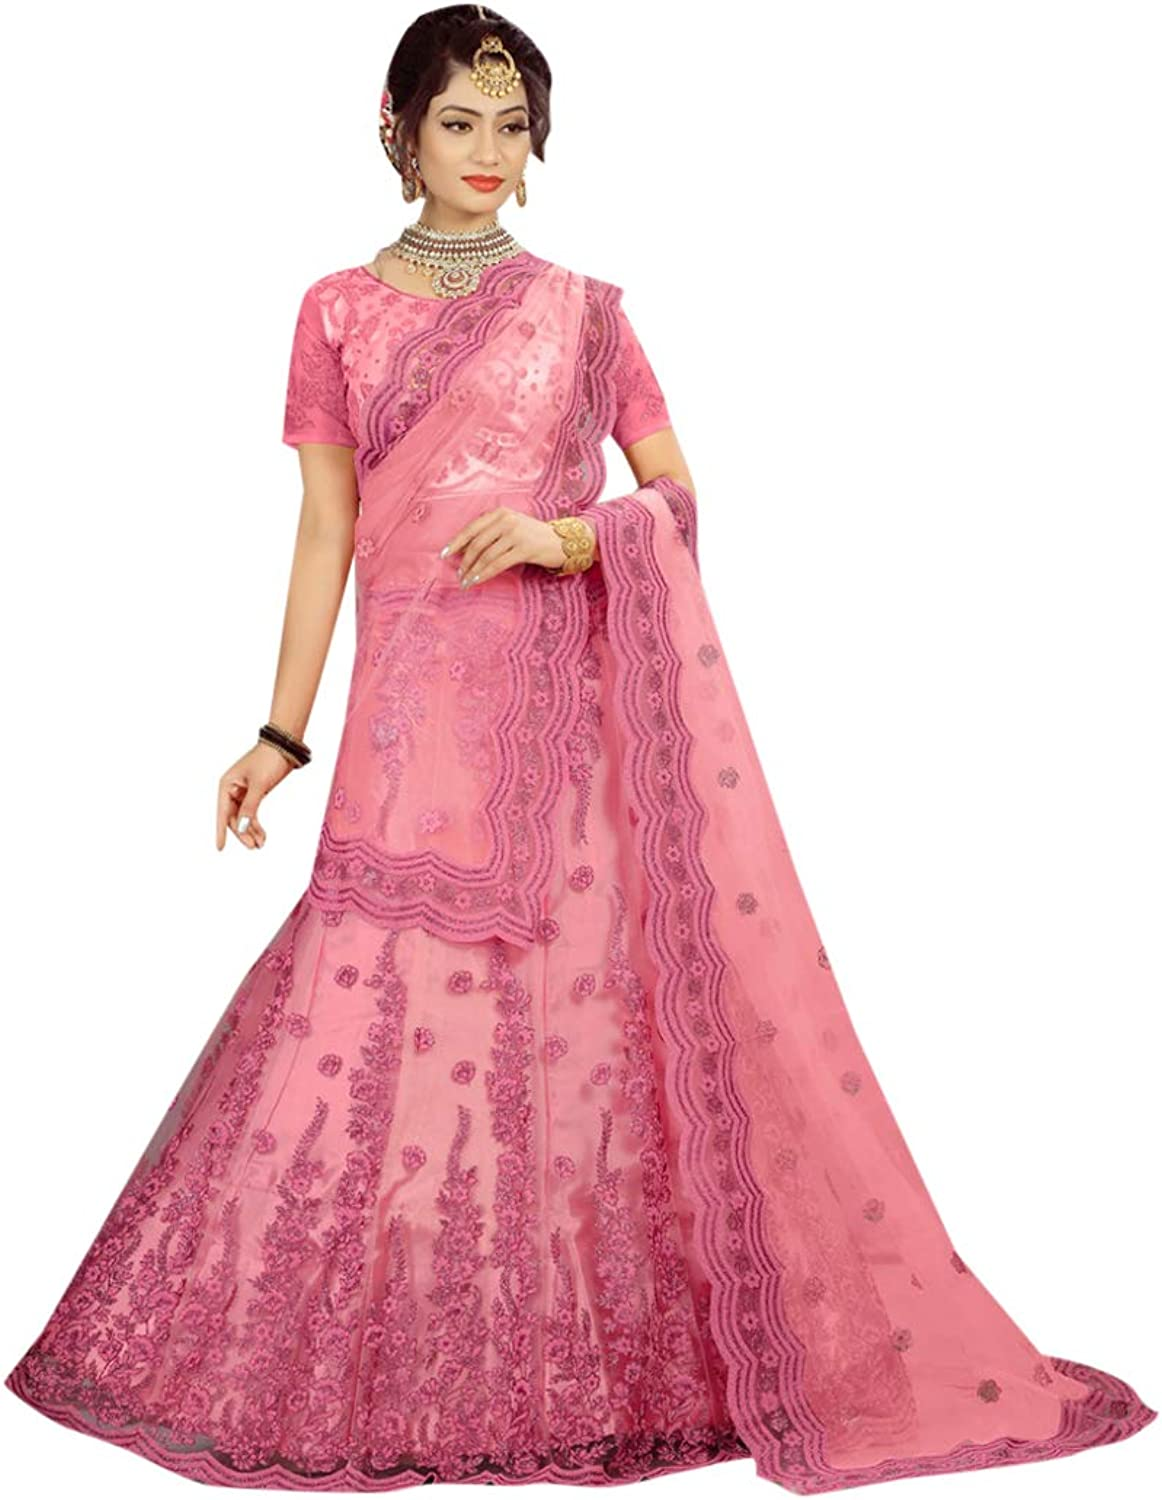 Indian Ethnic Pink Lehenga With Chaniya Choli Designer Collection Evening Cocktail Party Wear 7307